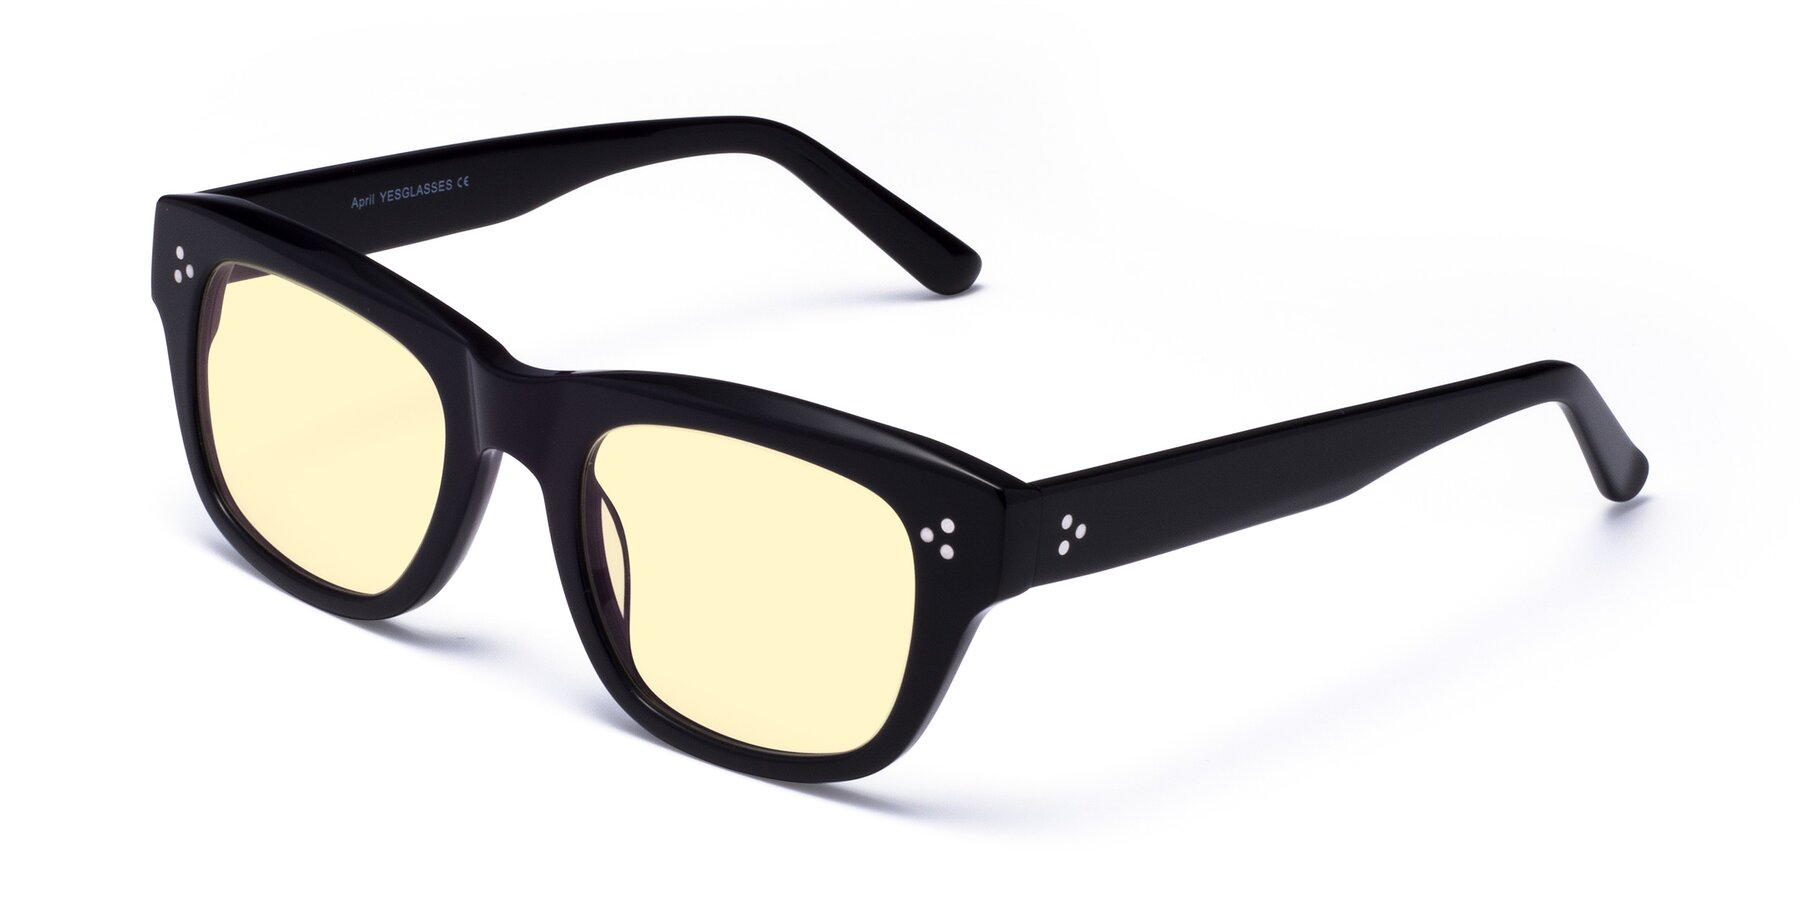 Angle of April in Black with Light Yellow Tinted Lenses